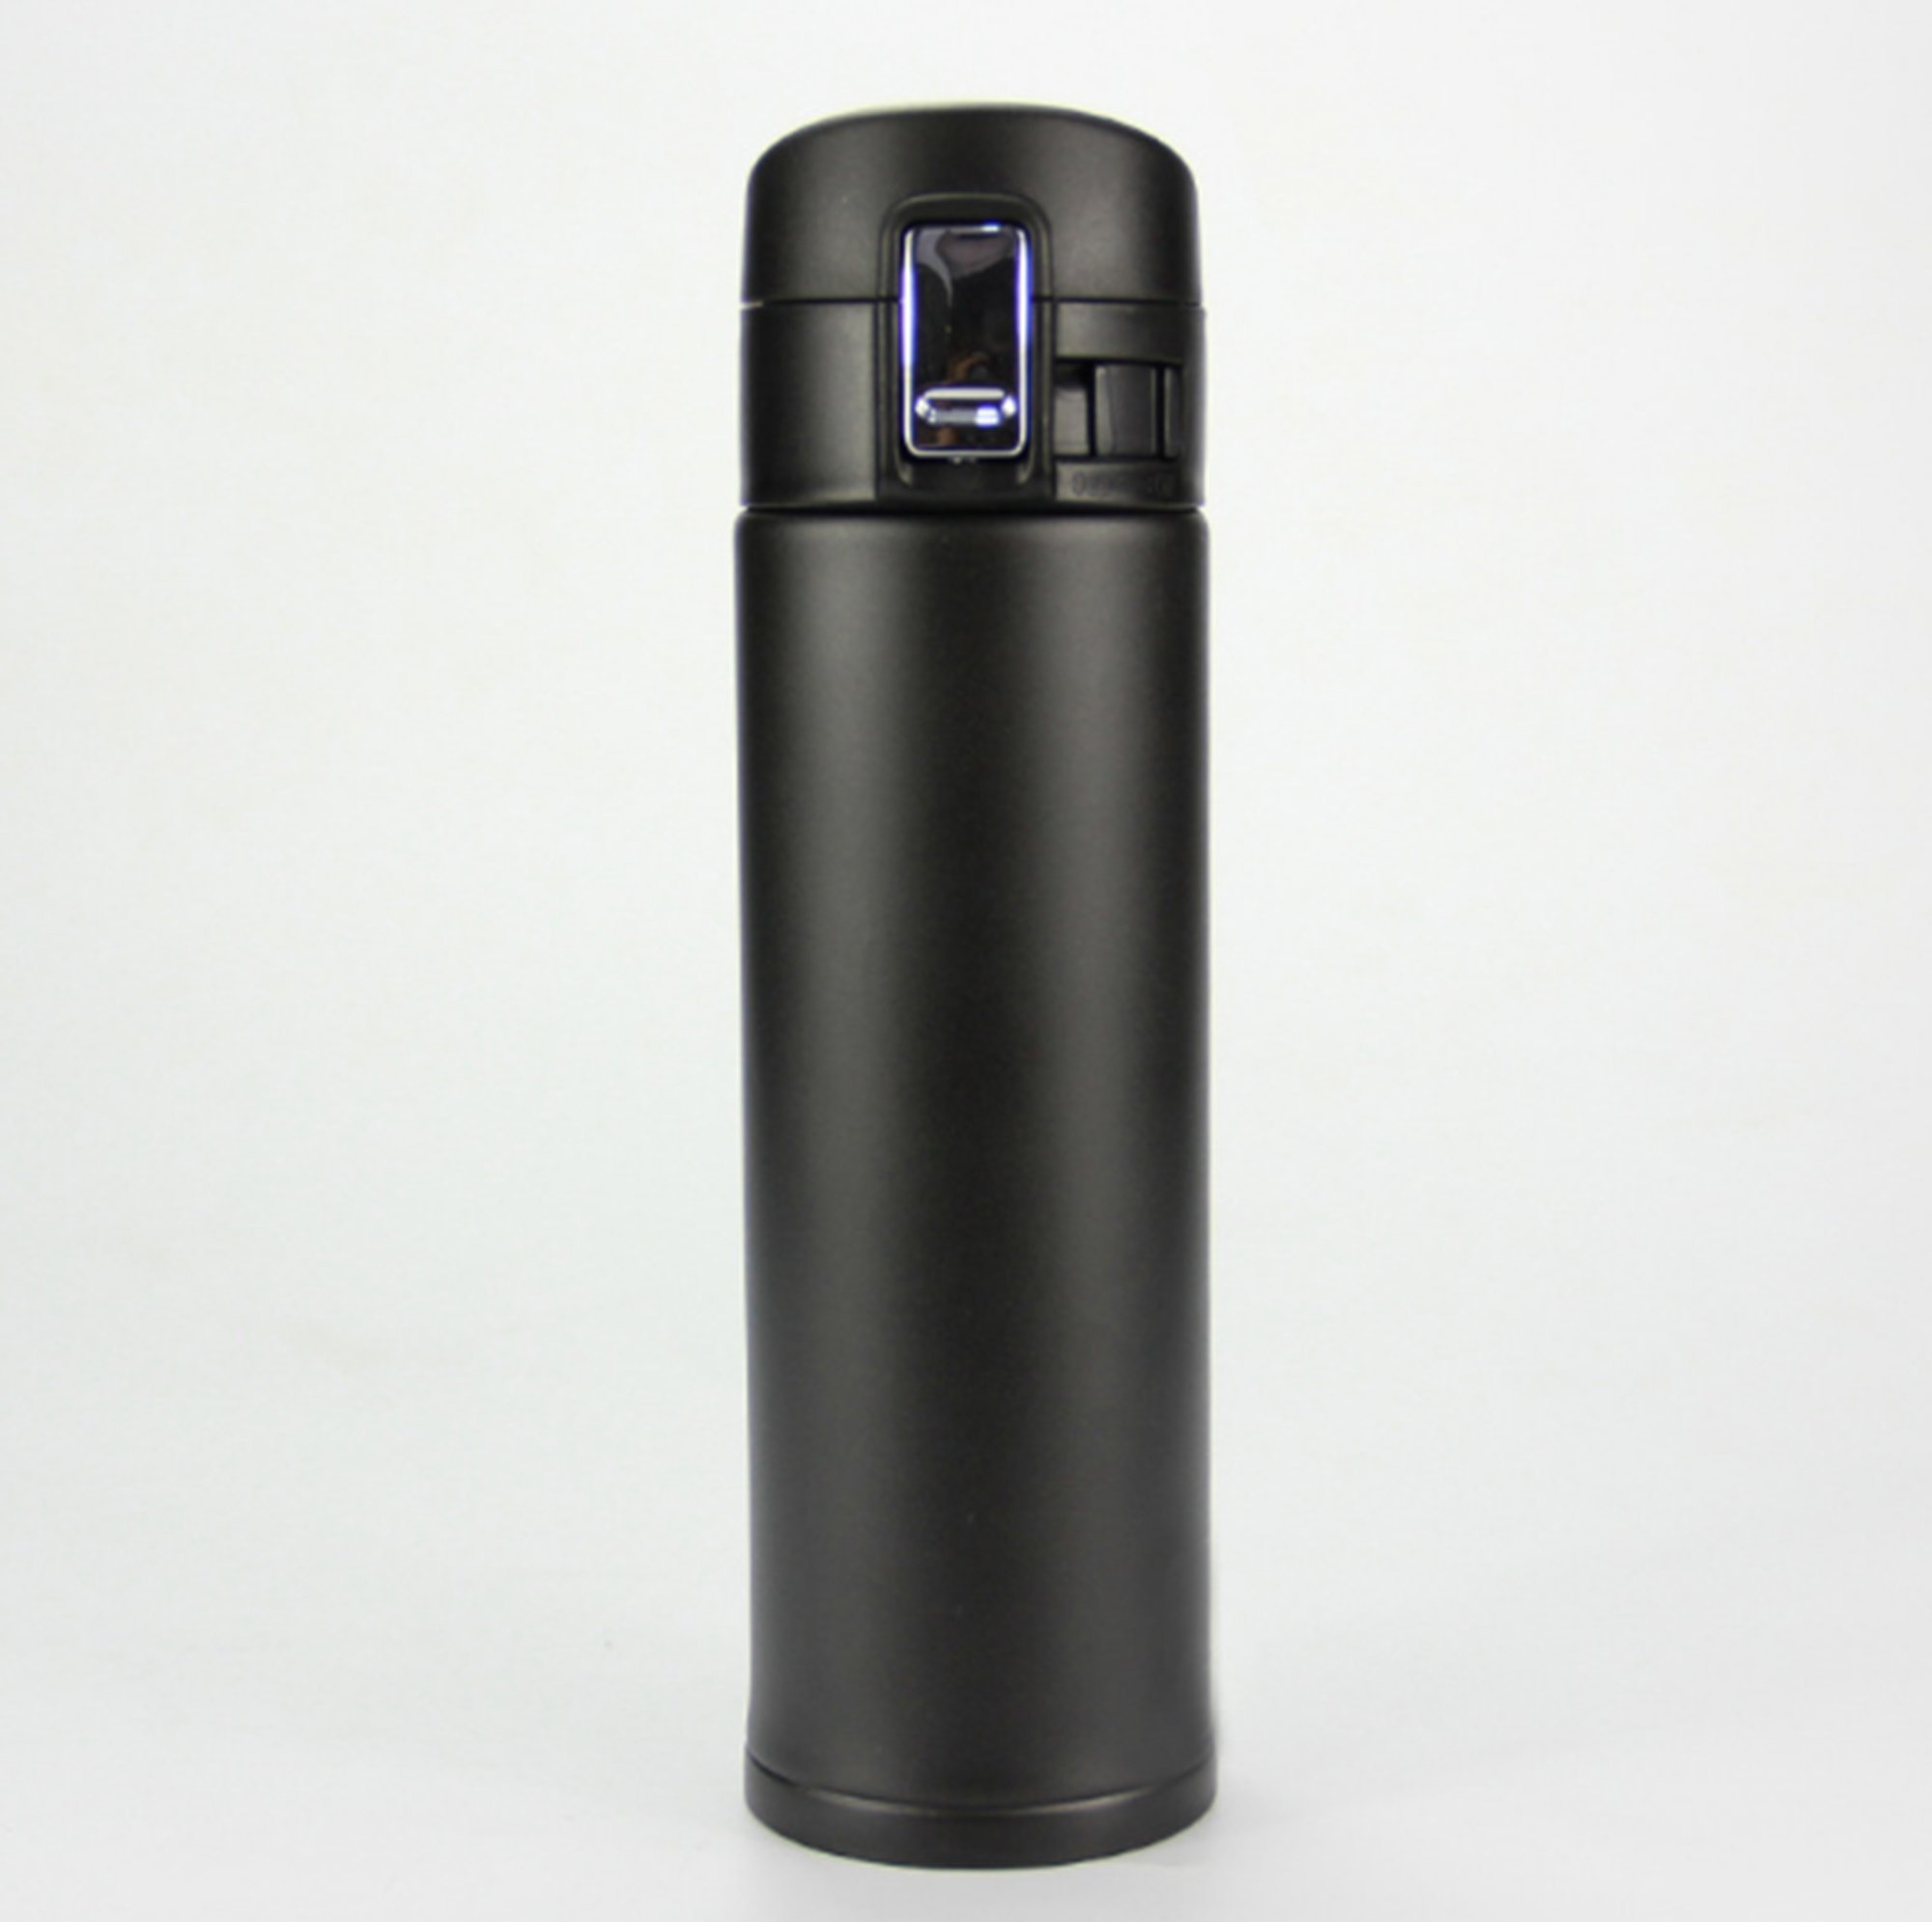 NOMSOCR Double Wall Vacuum Insulated Stainless Steel Coffee Travel Mug, One Hand Open, Resistant to stains and odors, Office Outdoor Water Bottle Keep warm for 12 to 24 hours (Black, 17-Ounce) by NOMSOCR (Image #1)